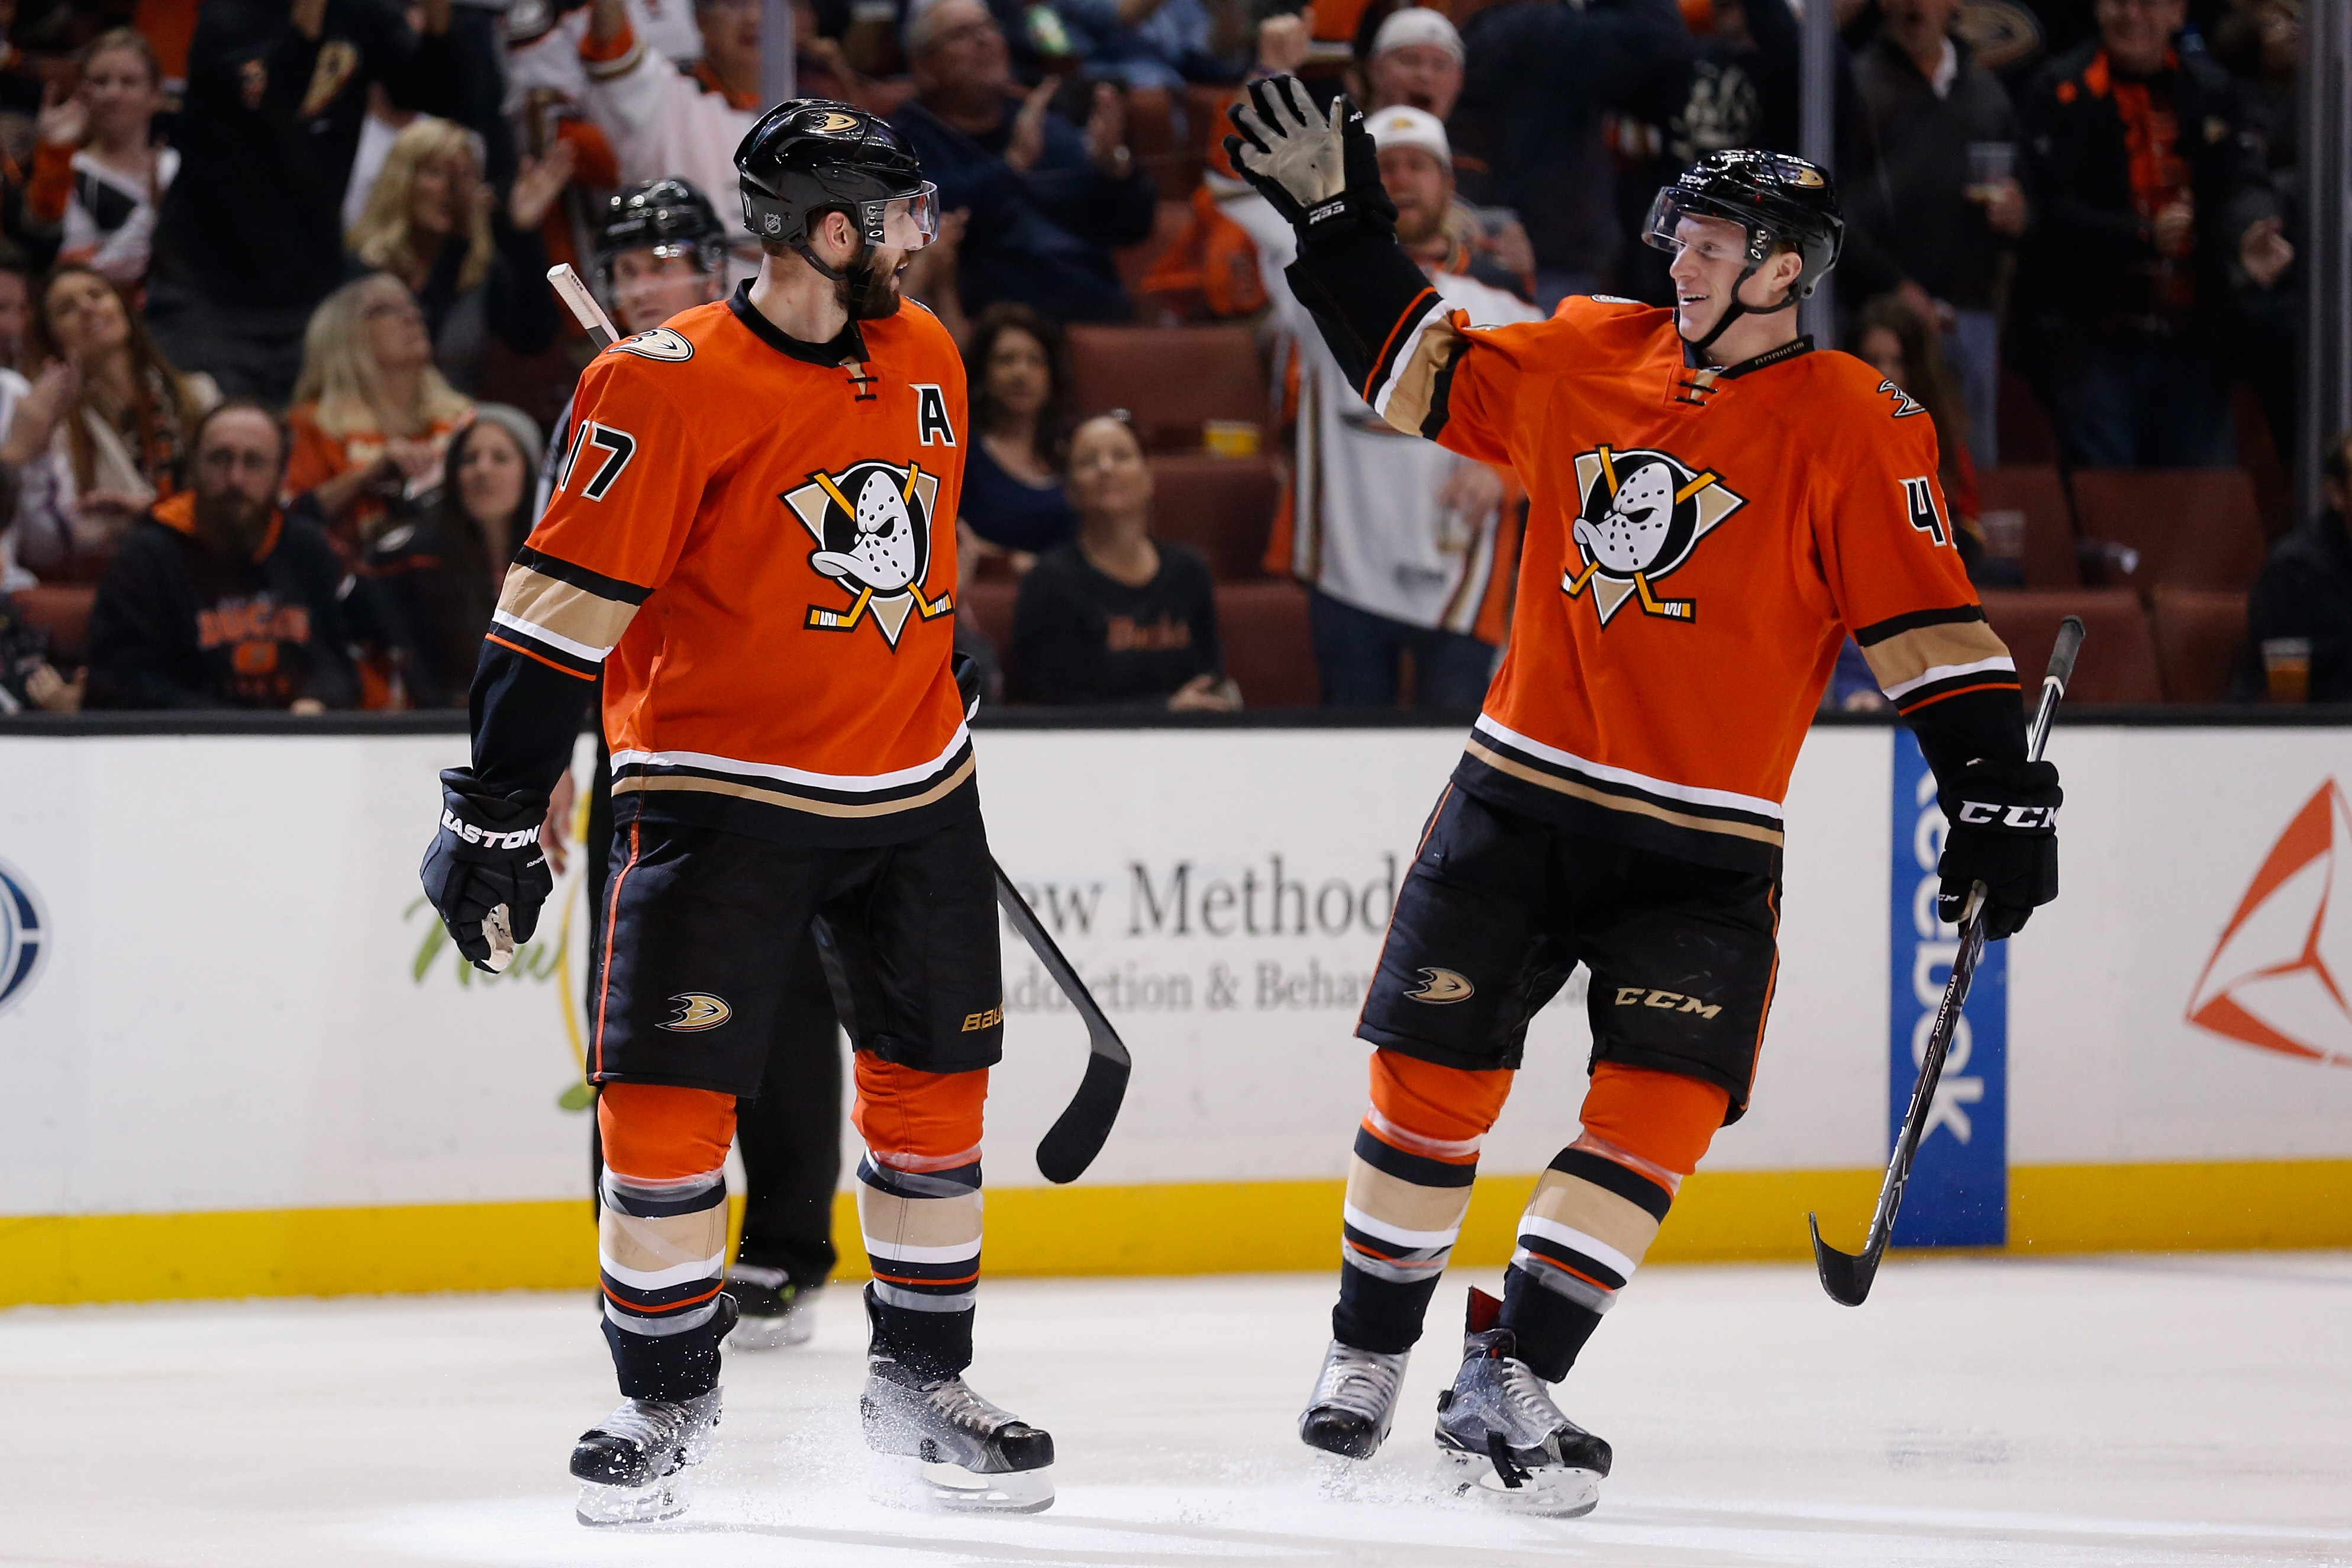 Ryan Kesler (17) and Josh Manson (42) celebrate one of the Ducks' goals in Sunday's 5-2 win over Calgary (Getty Images).